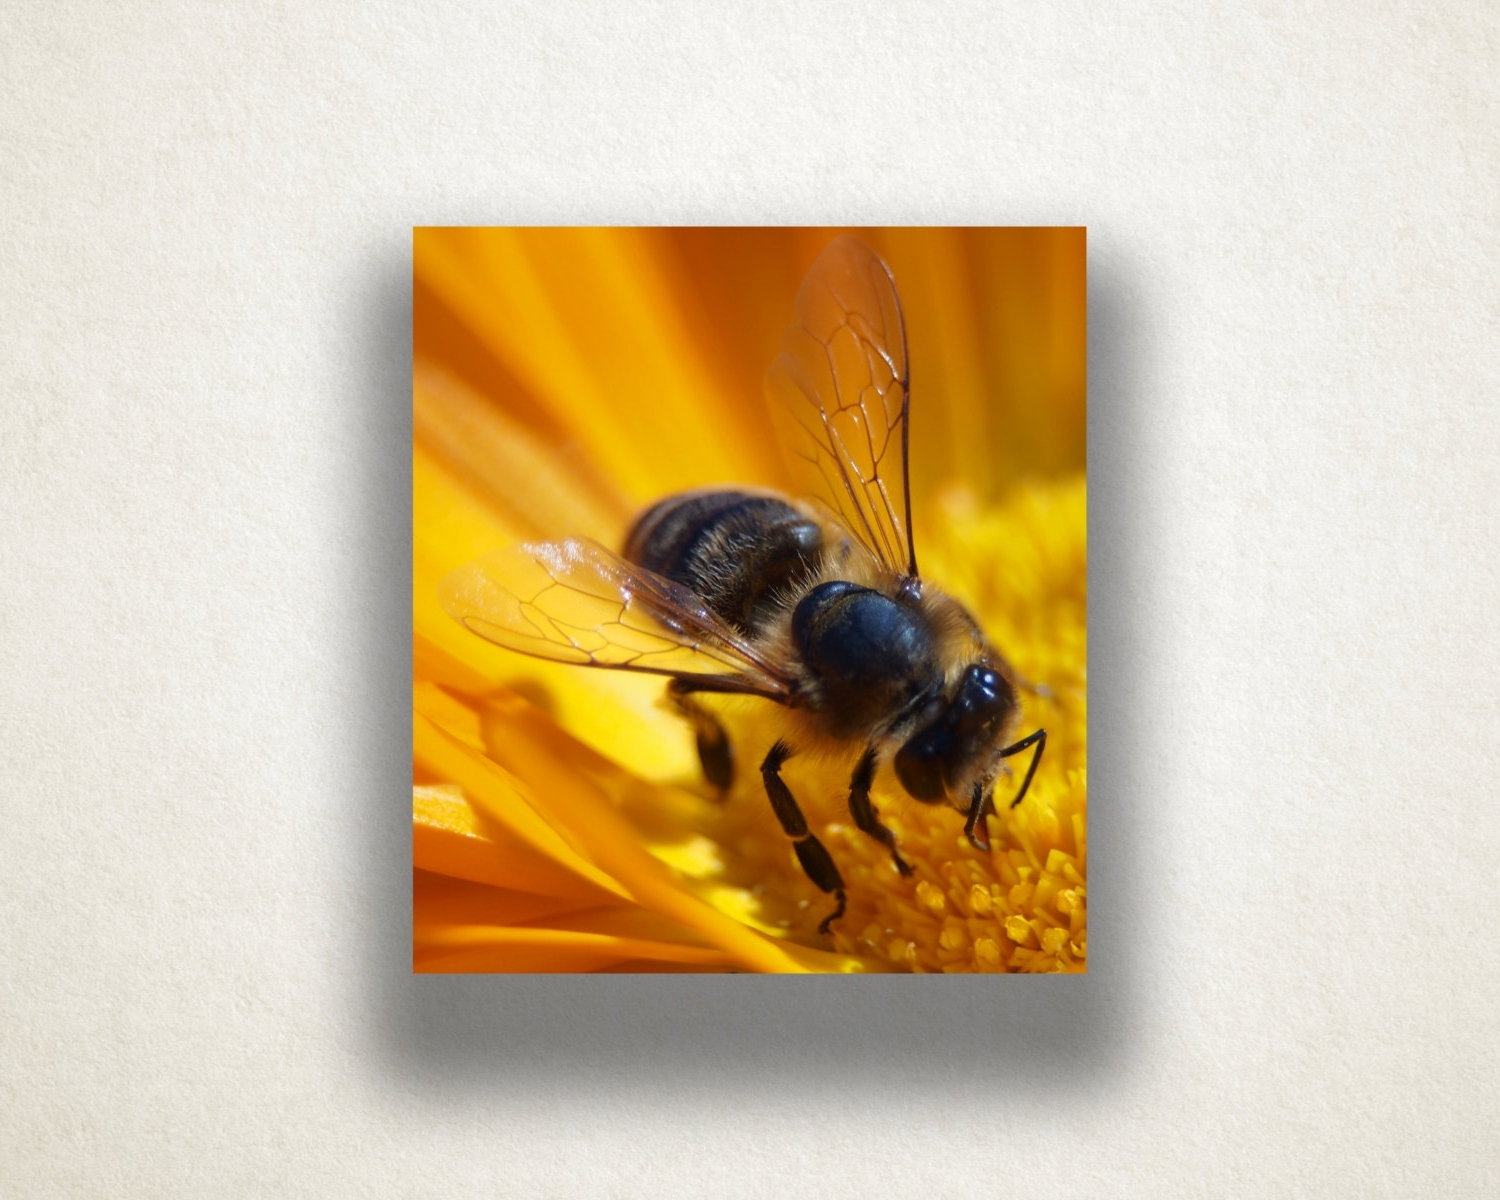 Preferred Flower And Bee Canvas Art, Bee Close Up Wall Art, Insect Canvas Intended For Insect Wall Art (View 7 of 15)